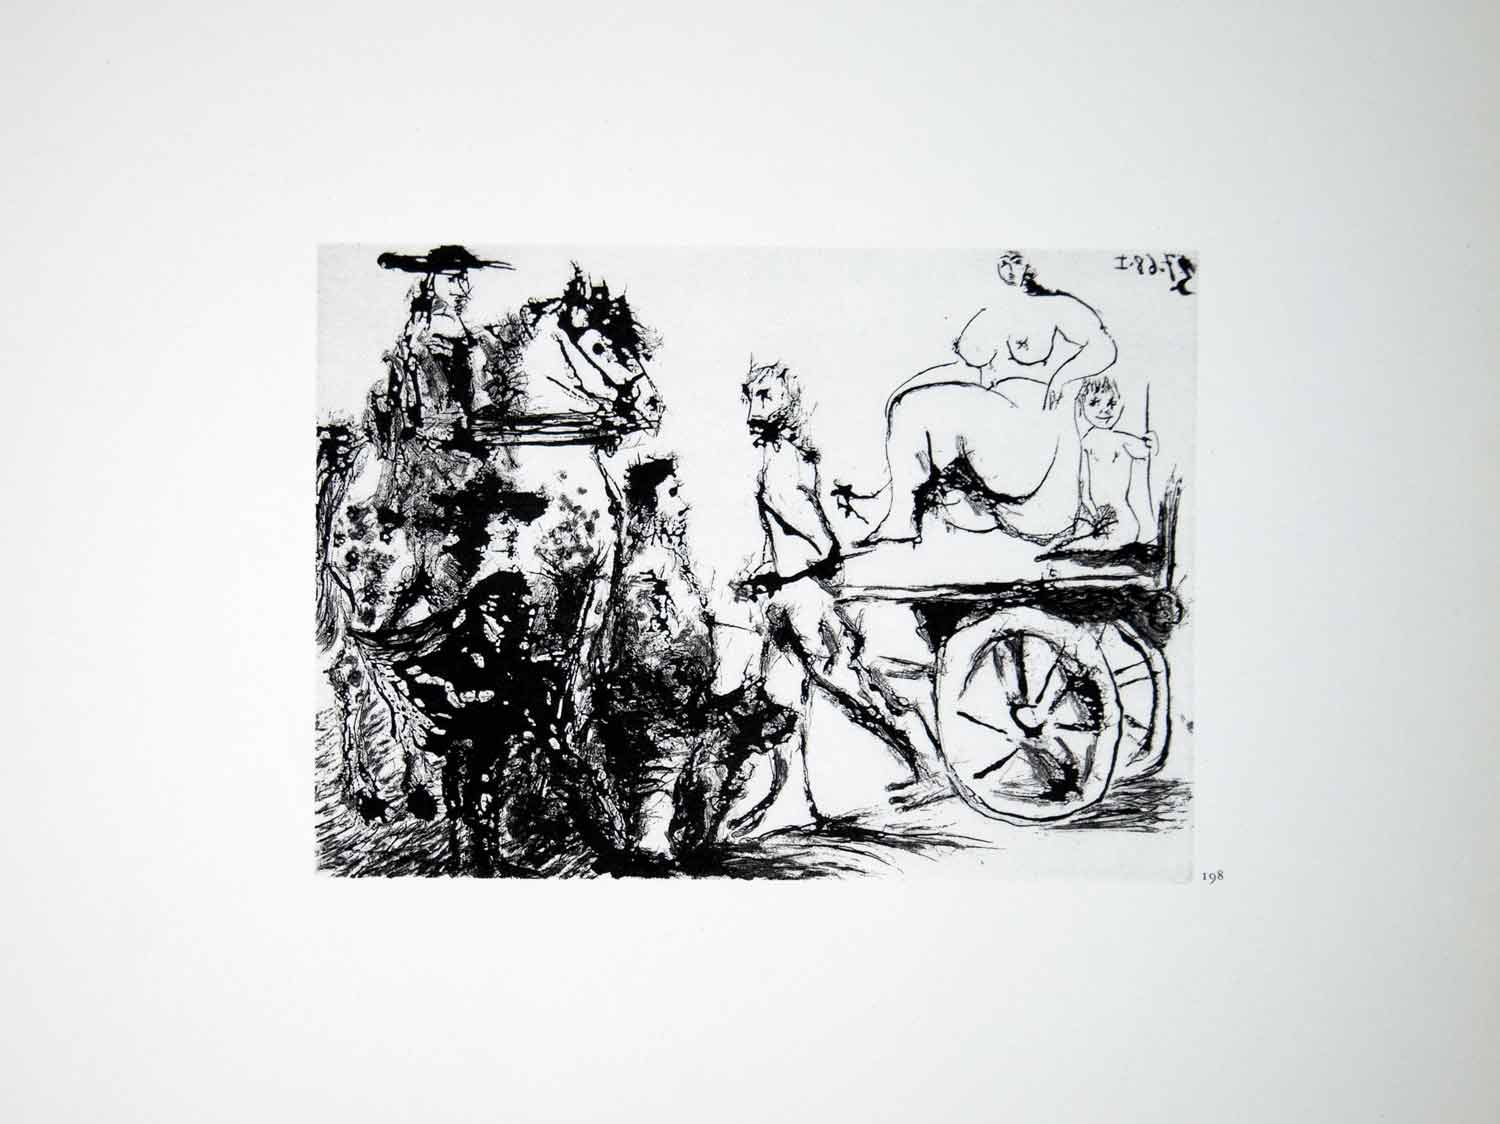 1970 Heliogravure Pablo Picasso Nude Woman Cart Caballero Horse Aquatint P347B